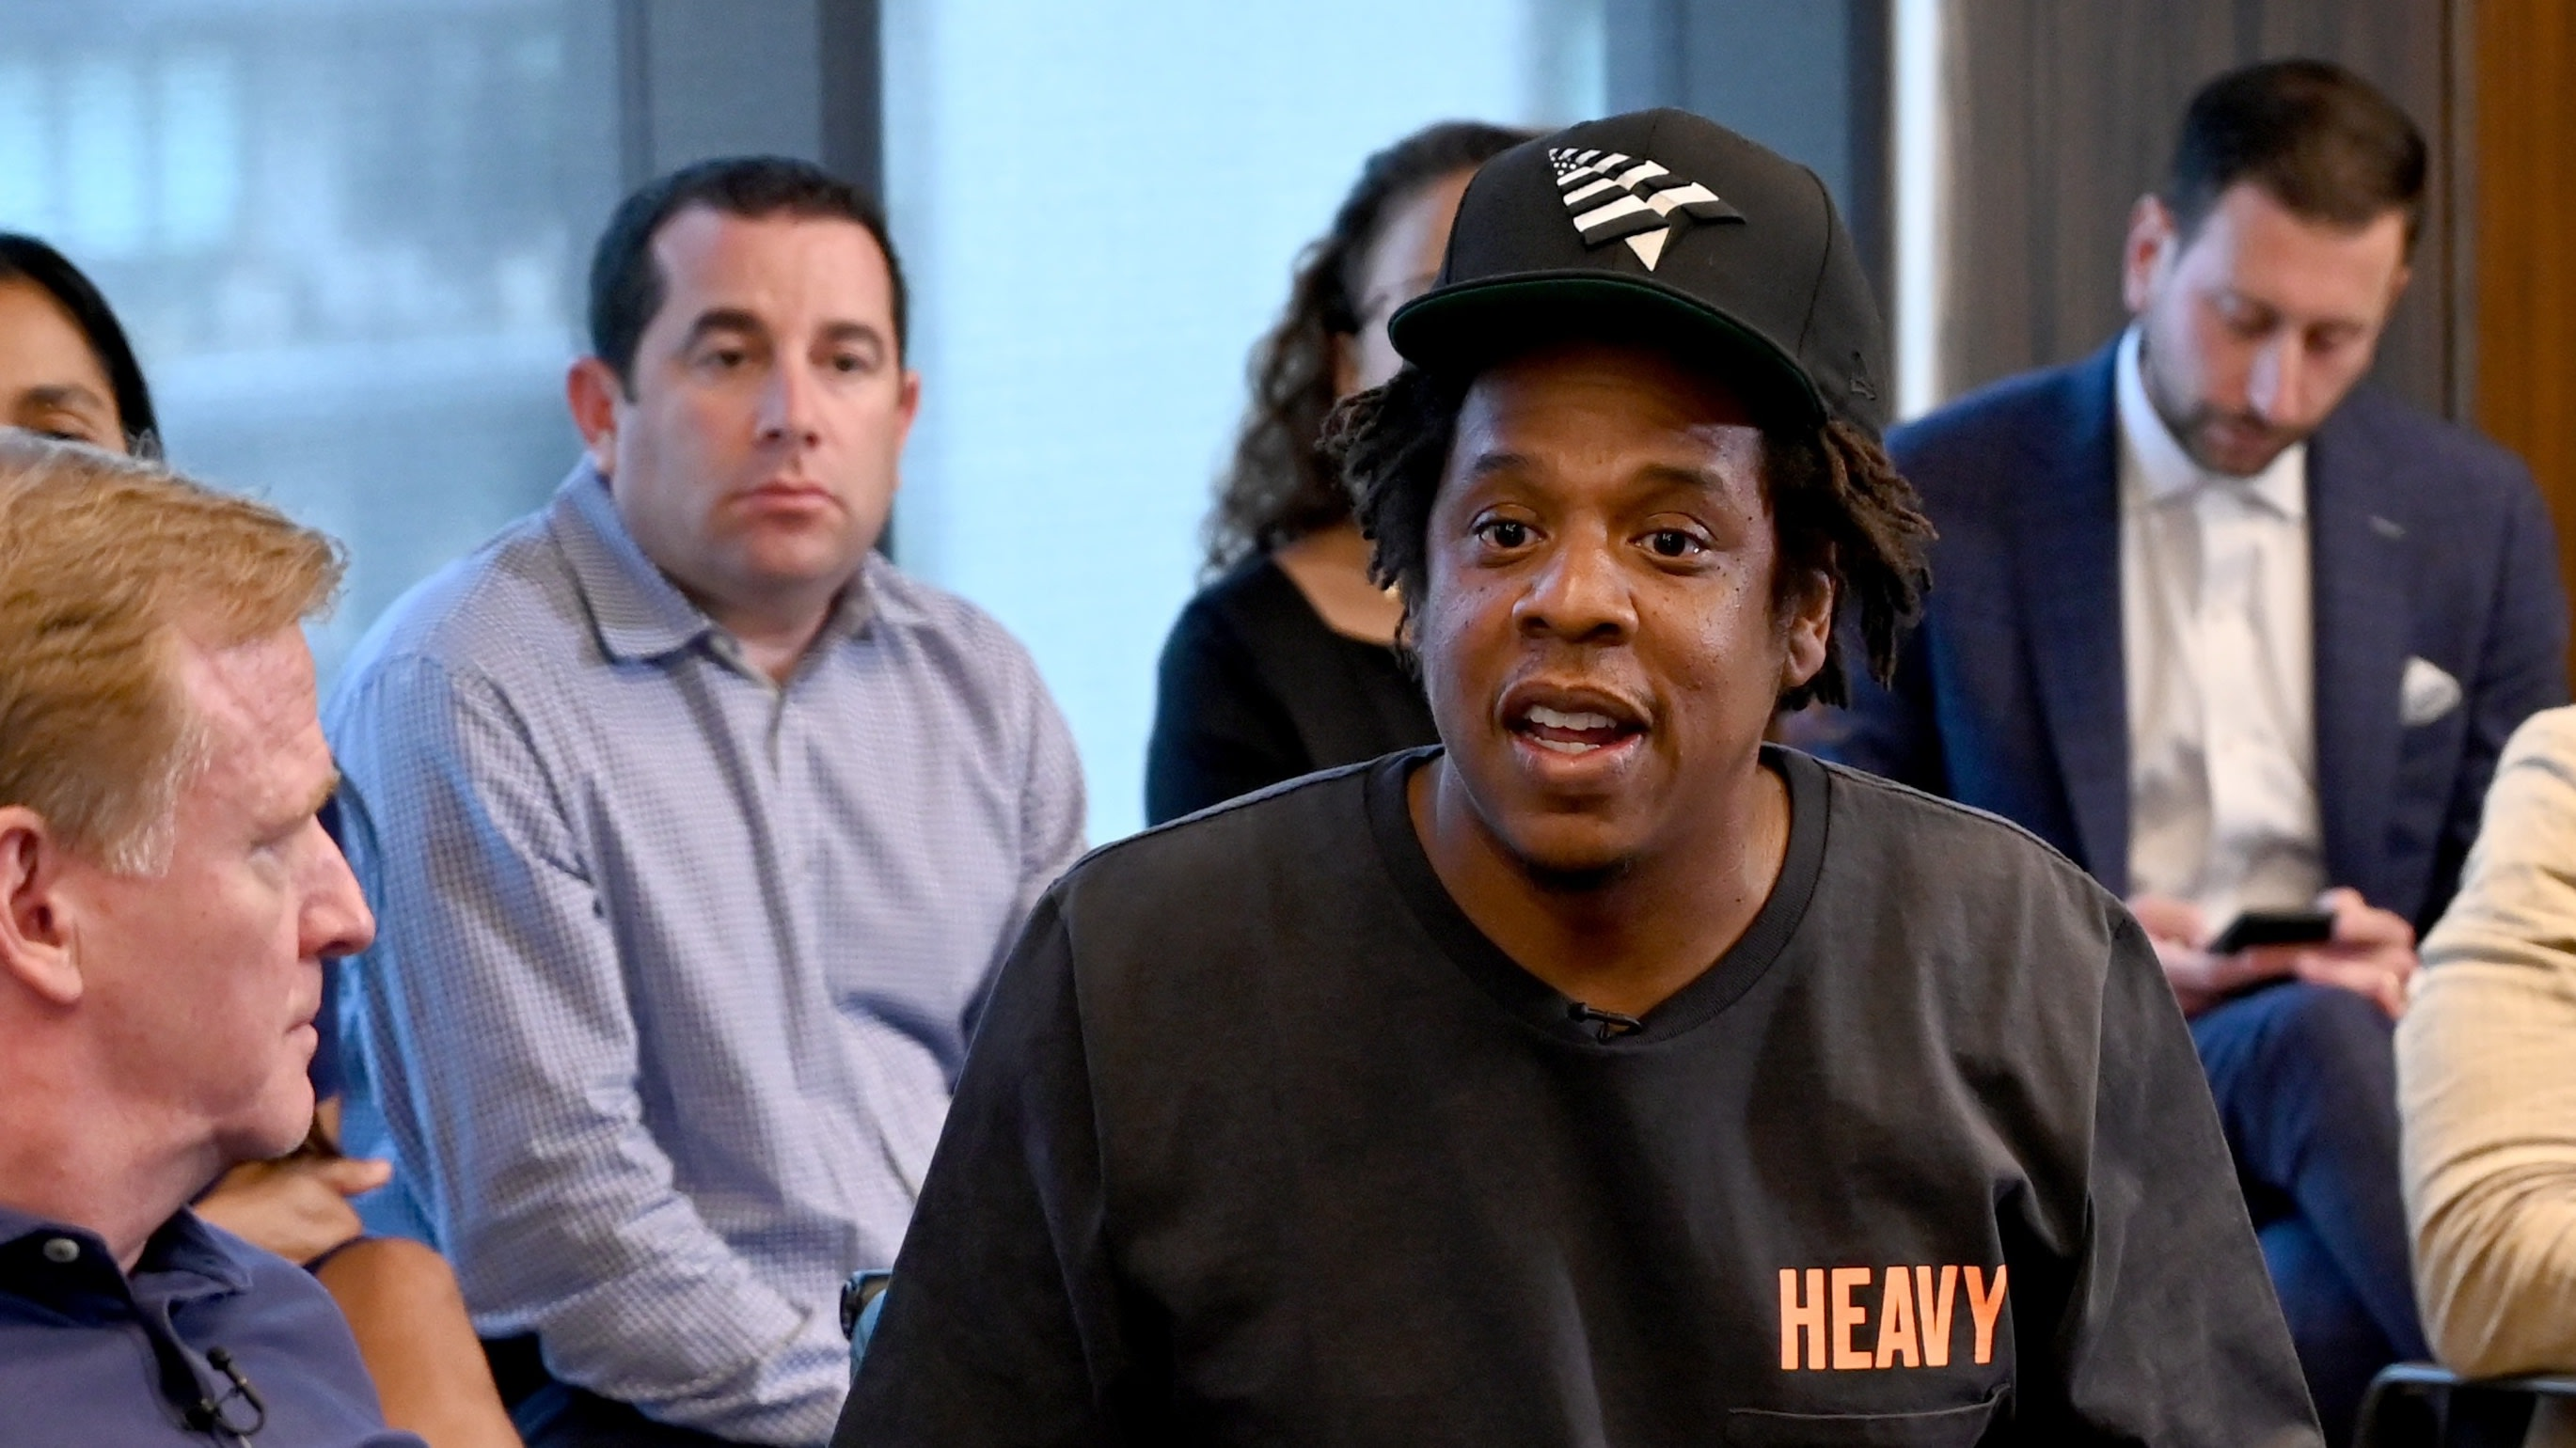 Jay-Z And NFL Reveal 'Inspire Change' Clothing Line And Concert Series With Meek Mill And Rapsody